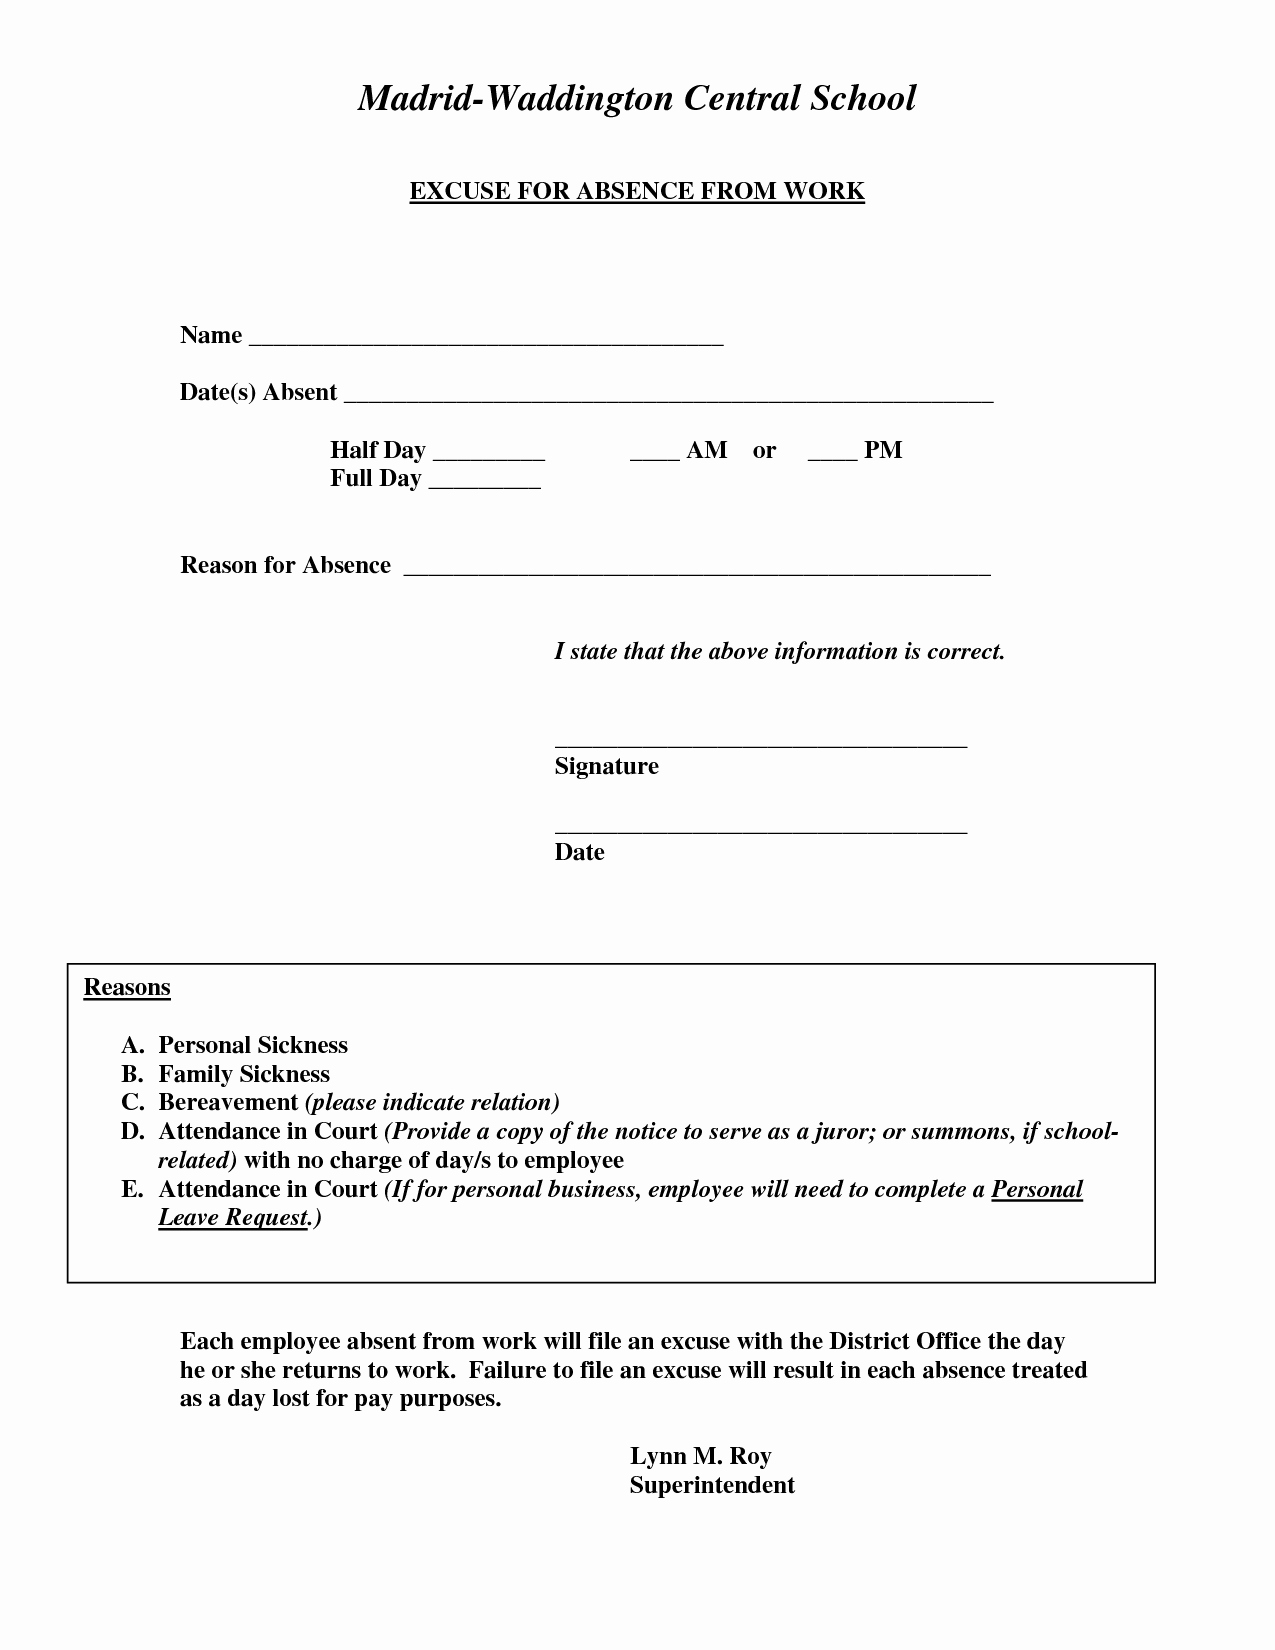 Emergency Room Doctor Note Template New Doctors Excuse for Work Template